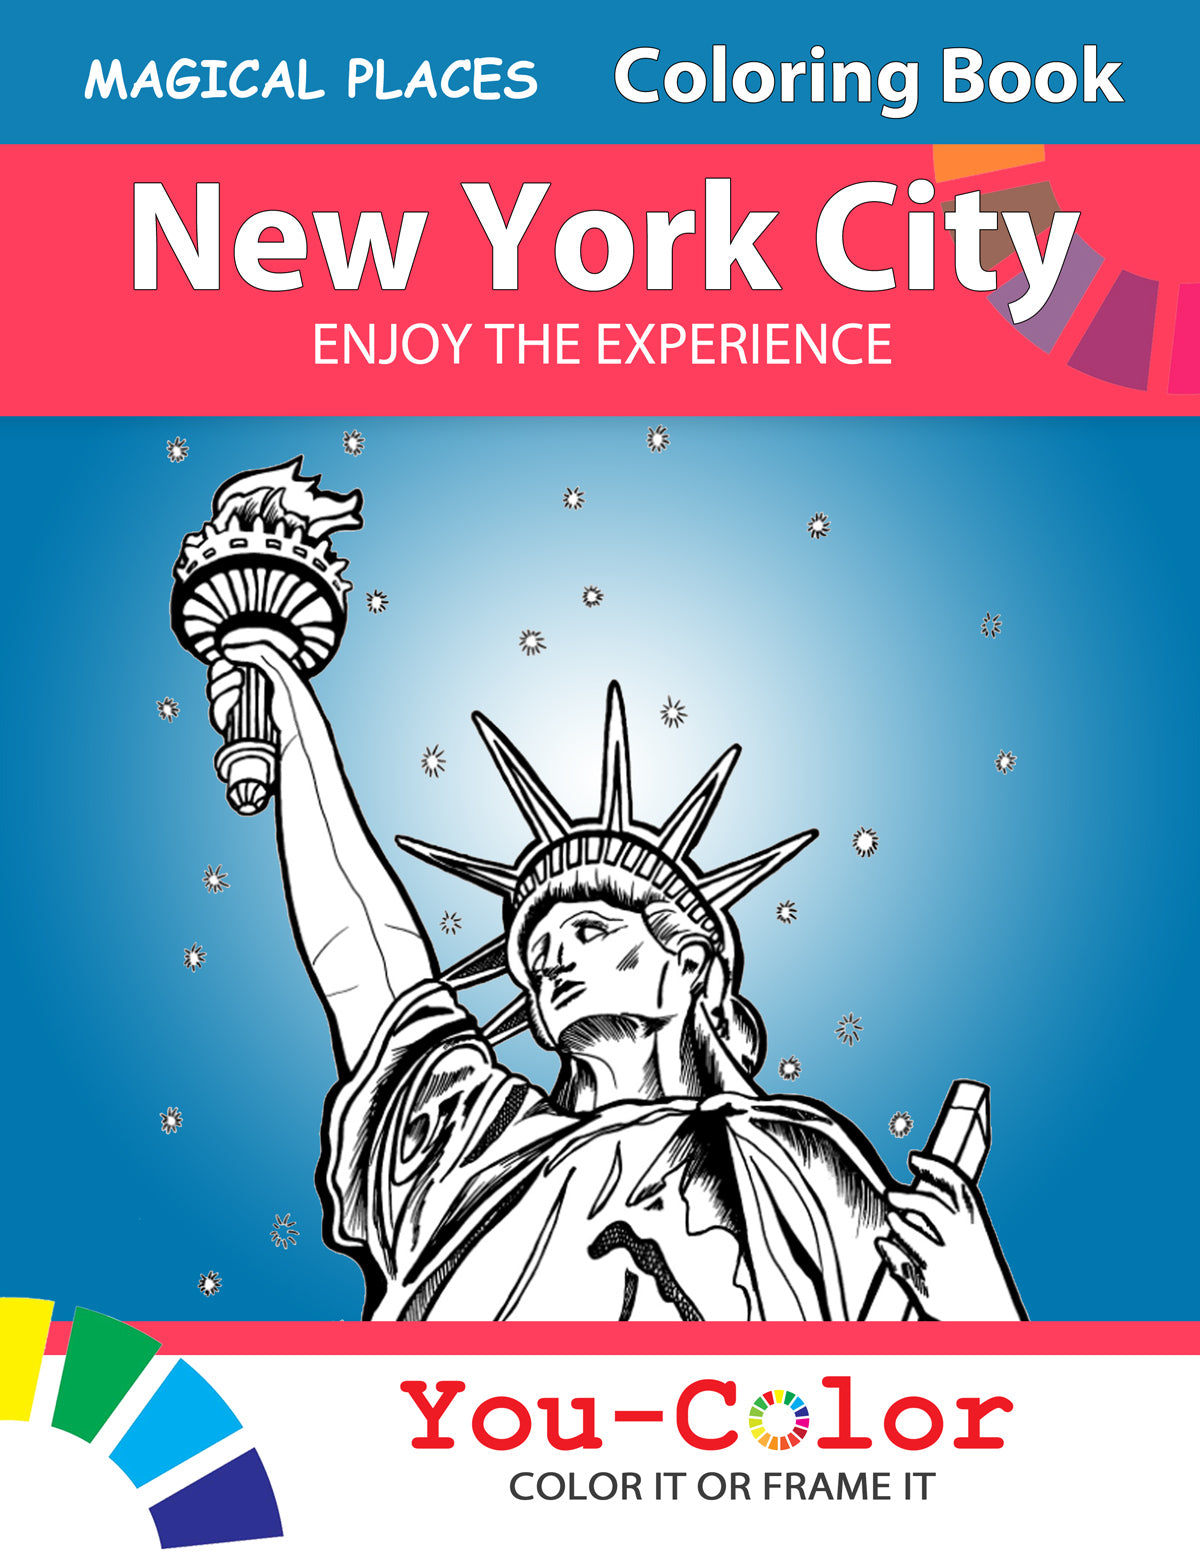 Big New York City Coloring Book - Buy Now!